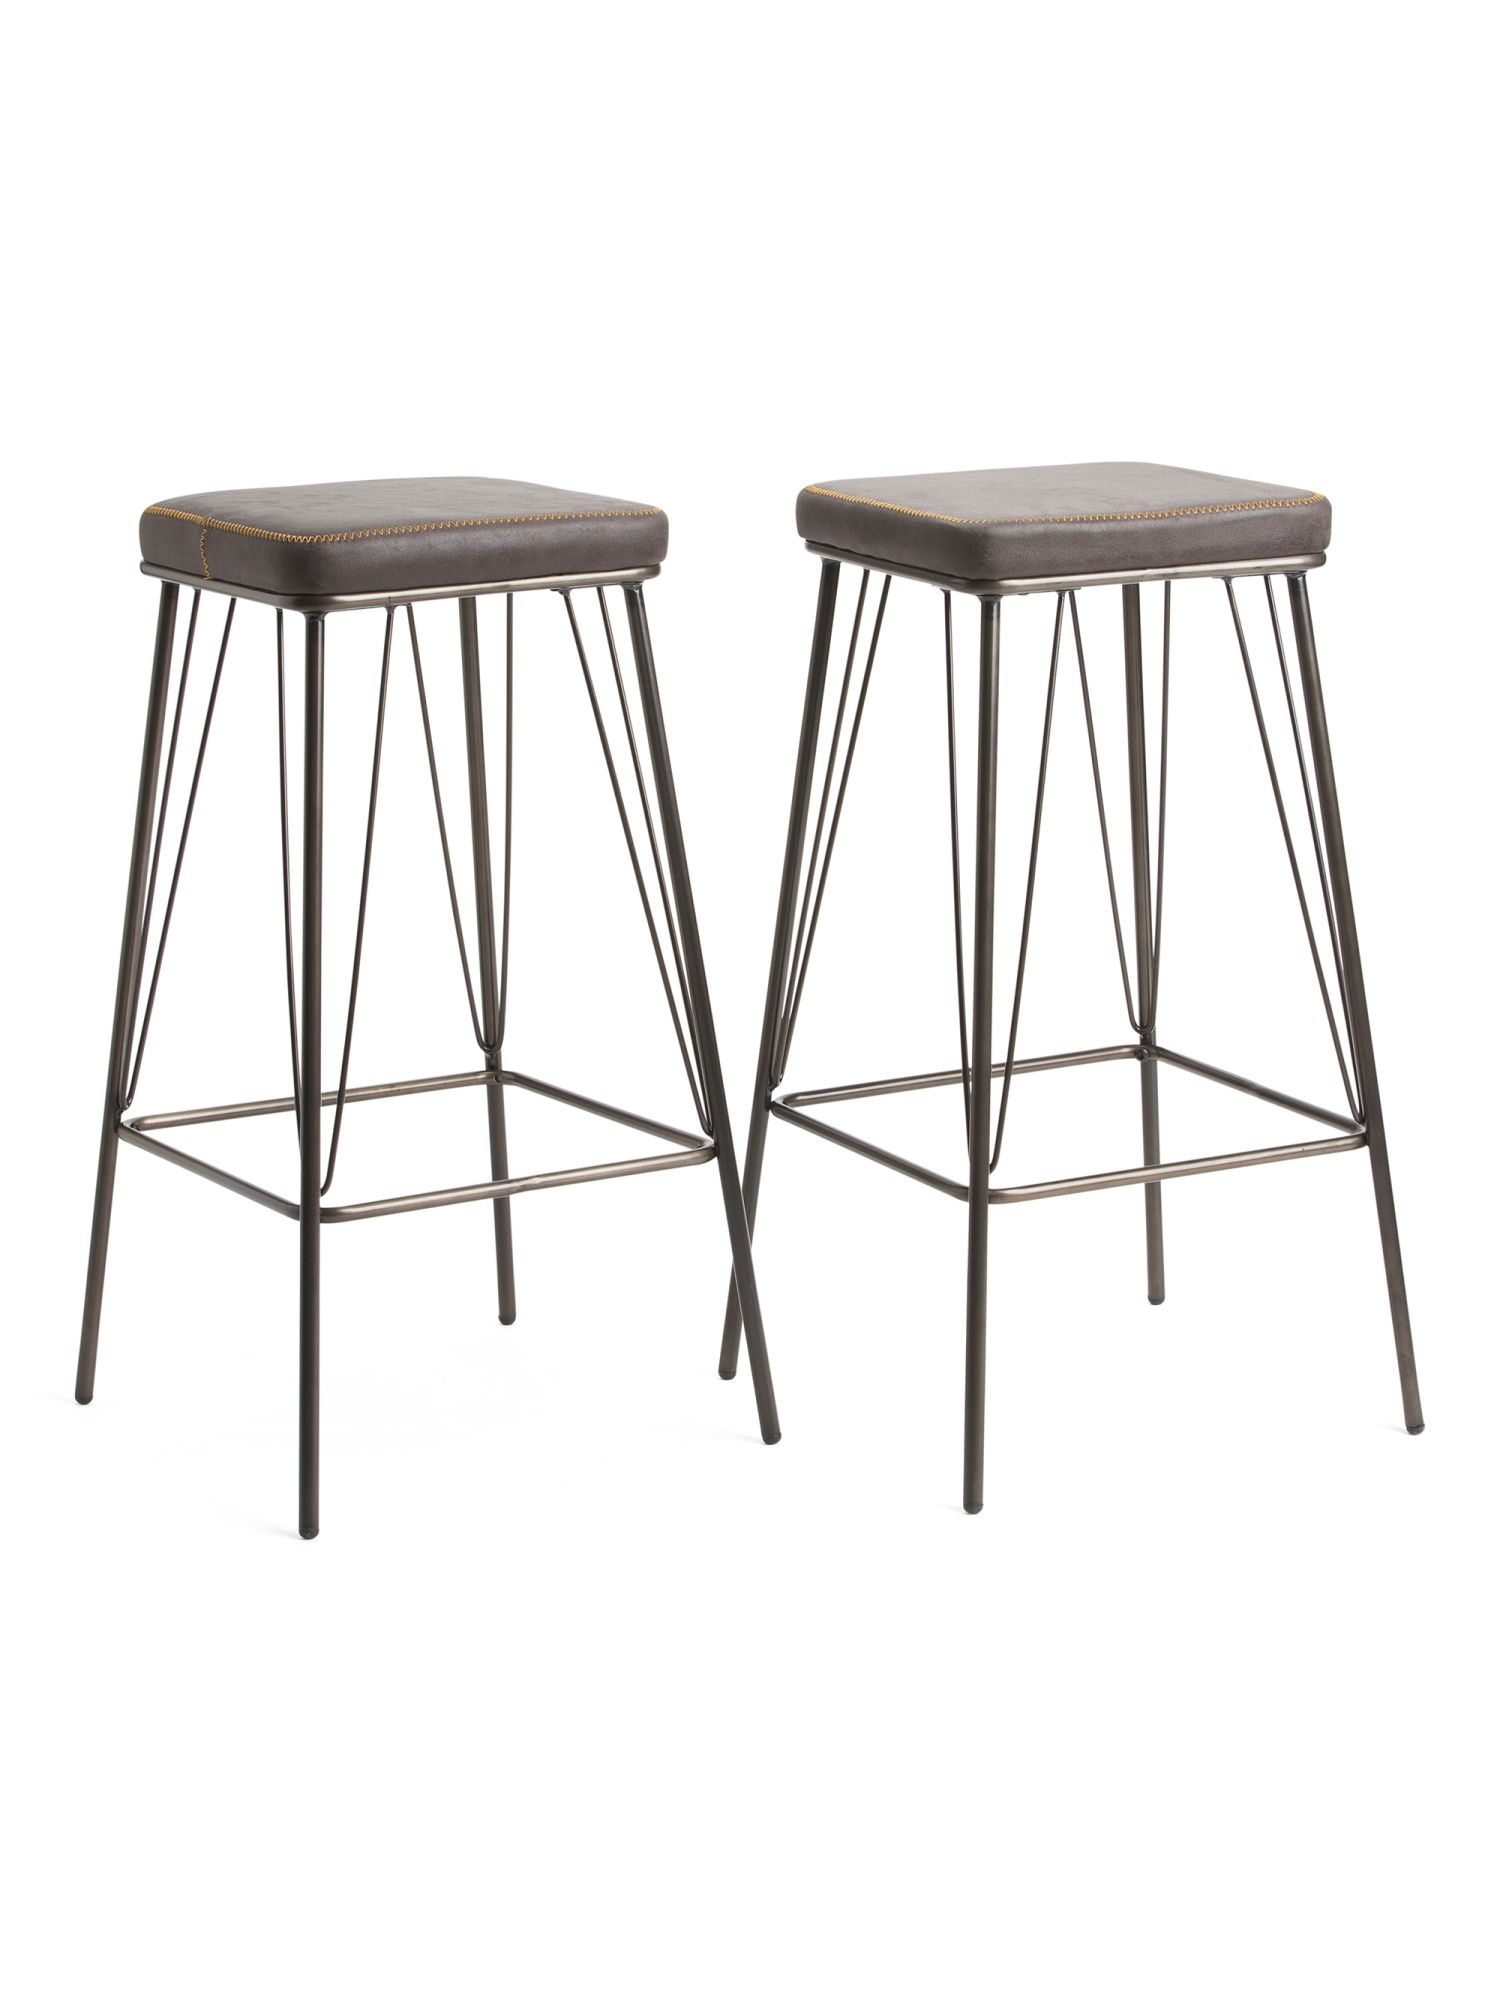 Counter Stools, Stool, Stools For